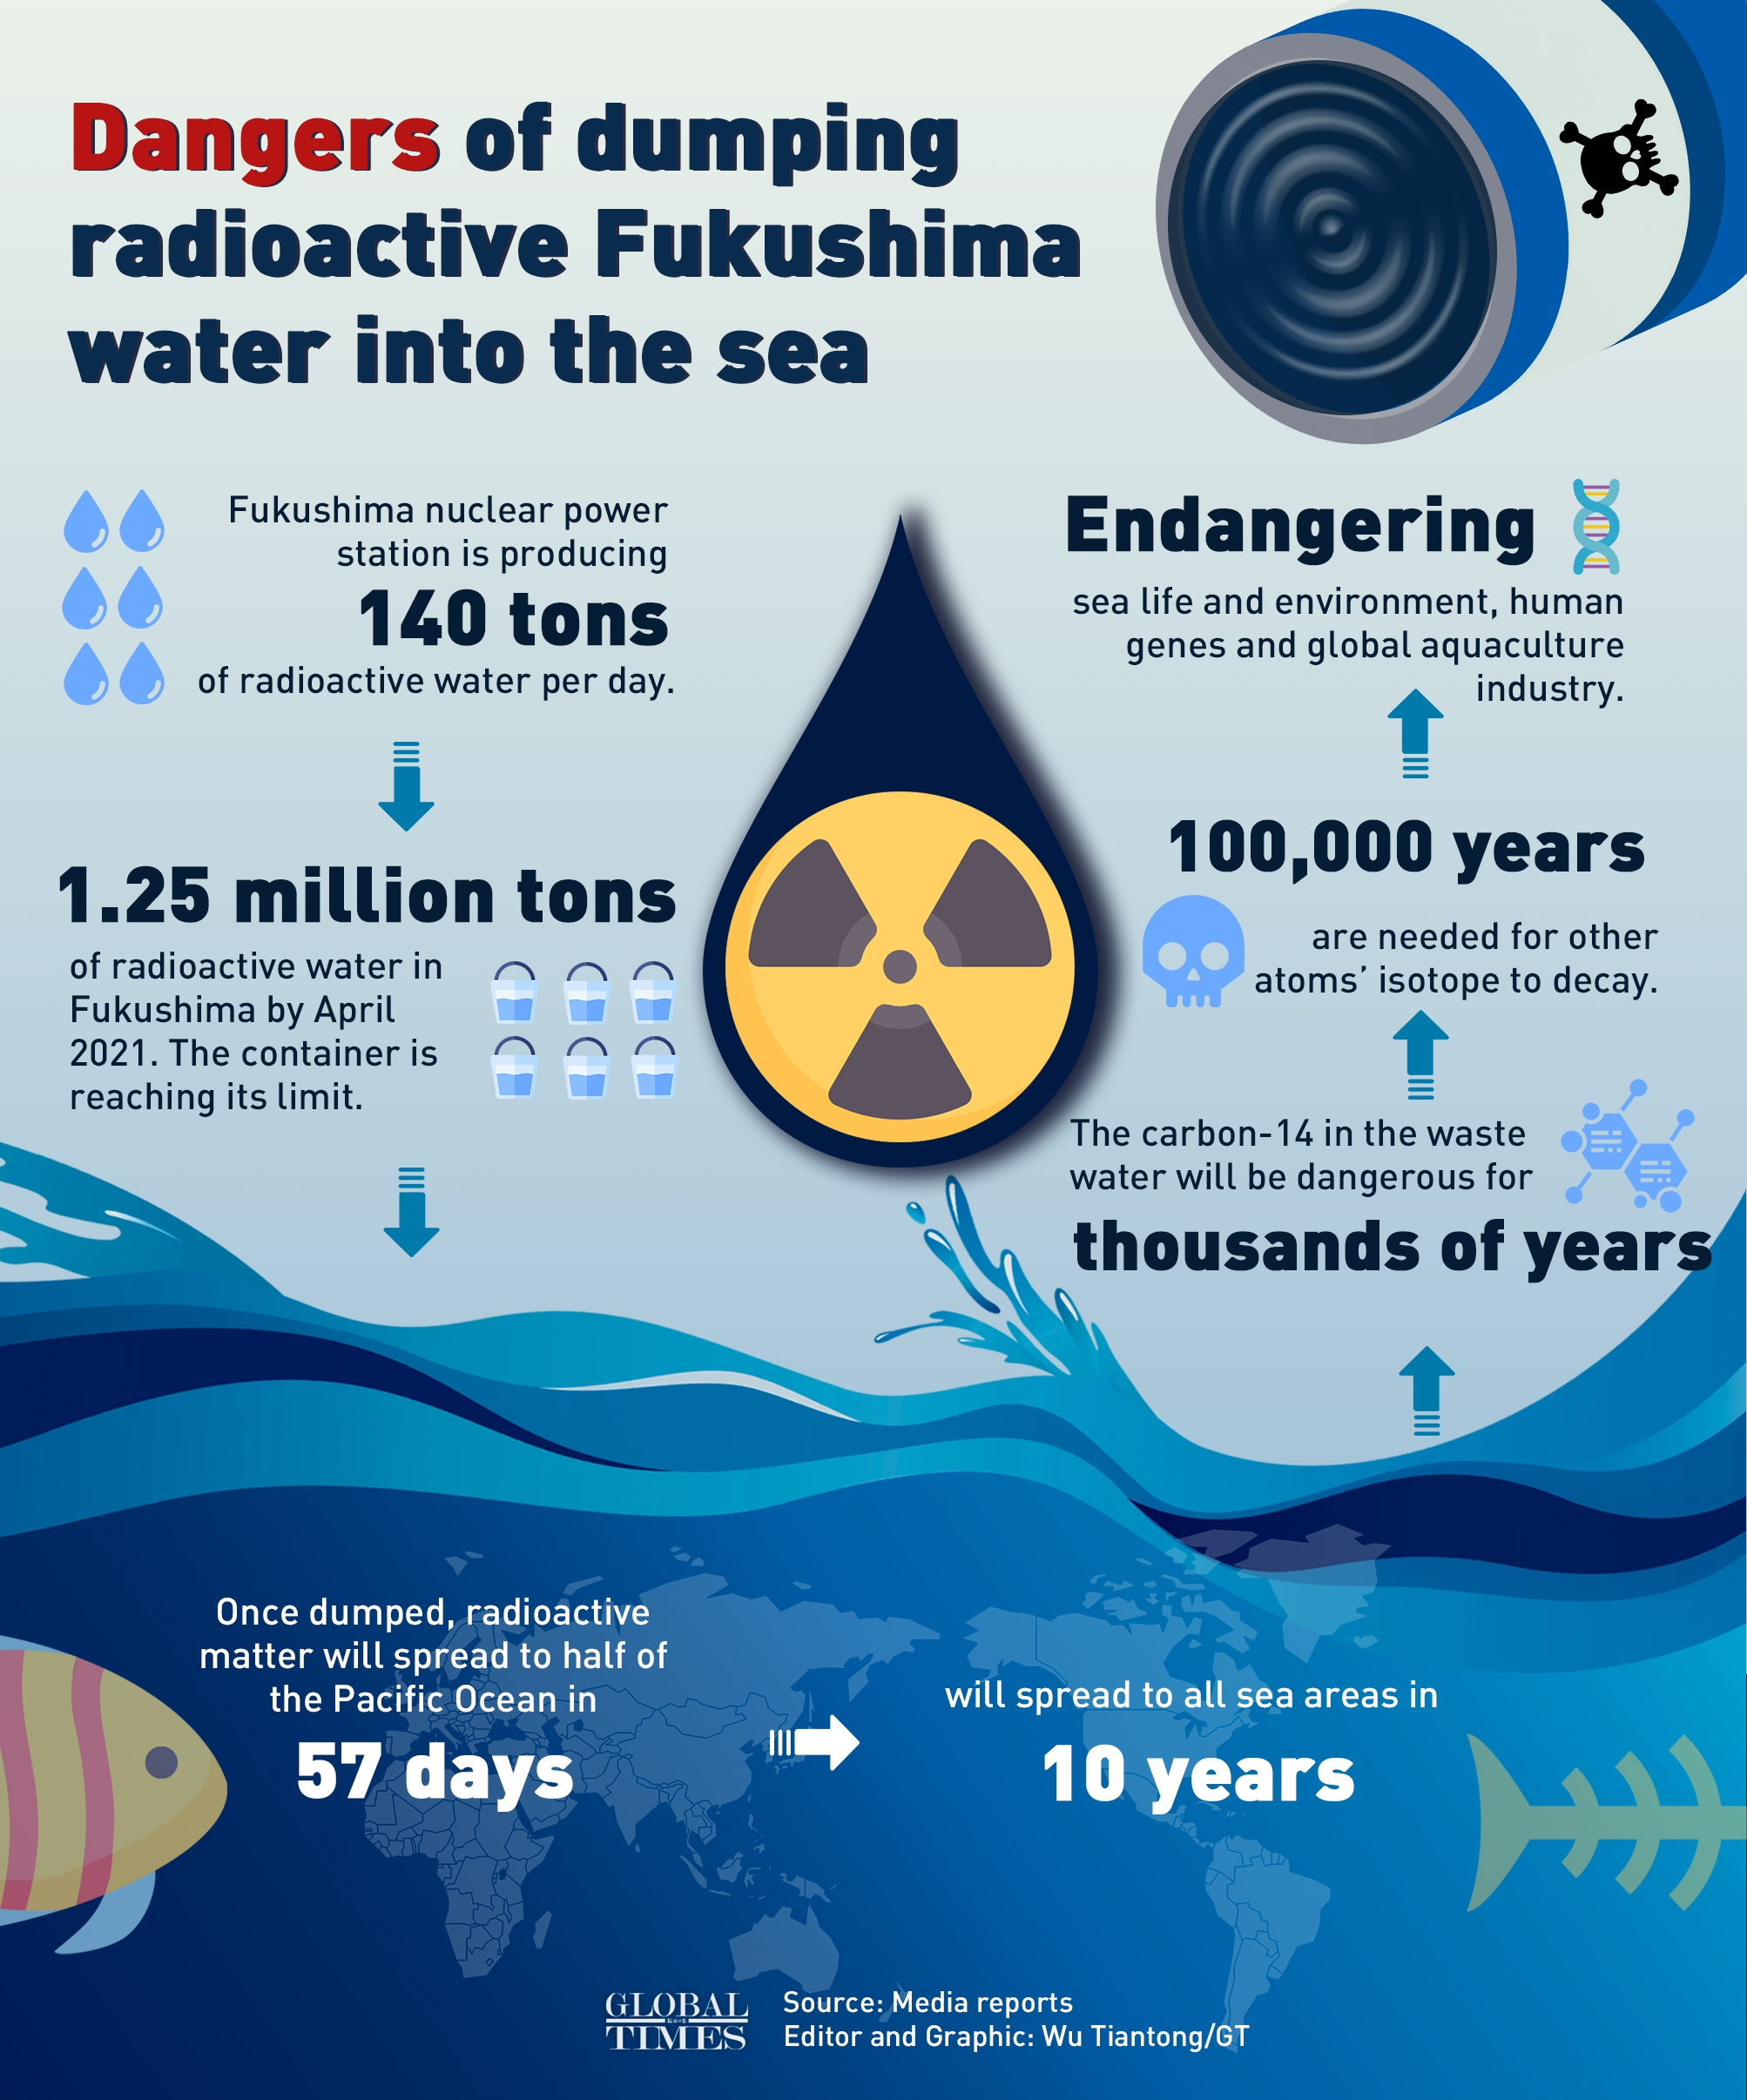 Can radioactive water be safely disposed? Check out this infographic to understand dangers of dumping Fukushima's radioactive water: Infographic: Wu Tiantong/GT